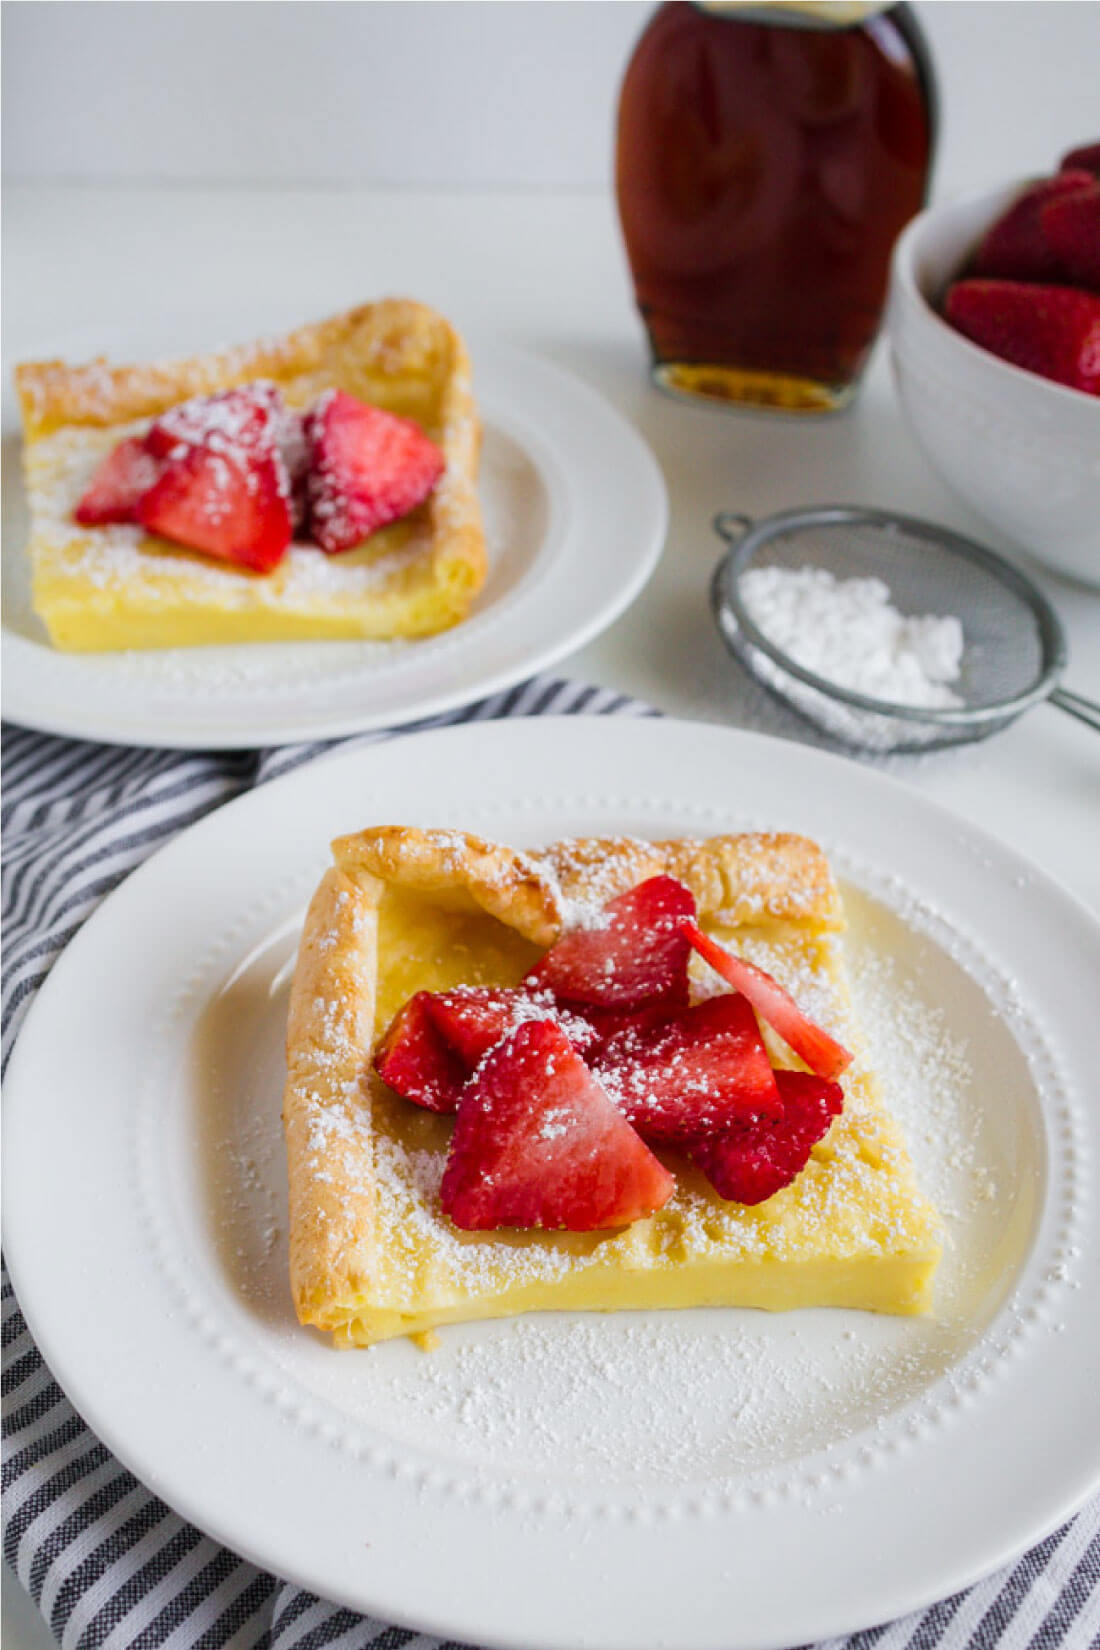 German Pancakes or Dutch Baby recipe - an old family favorite that we love to make for breakfast. Cut up.